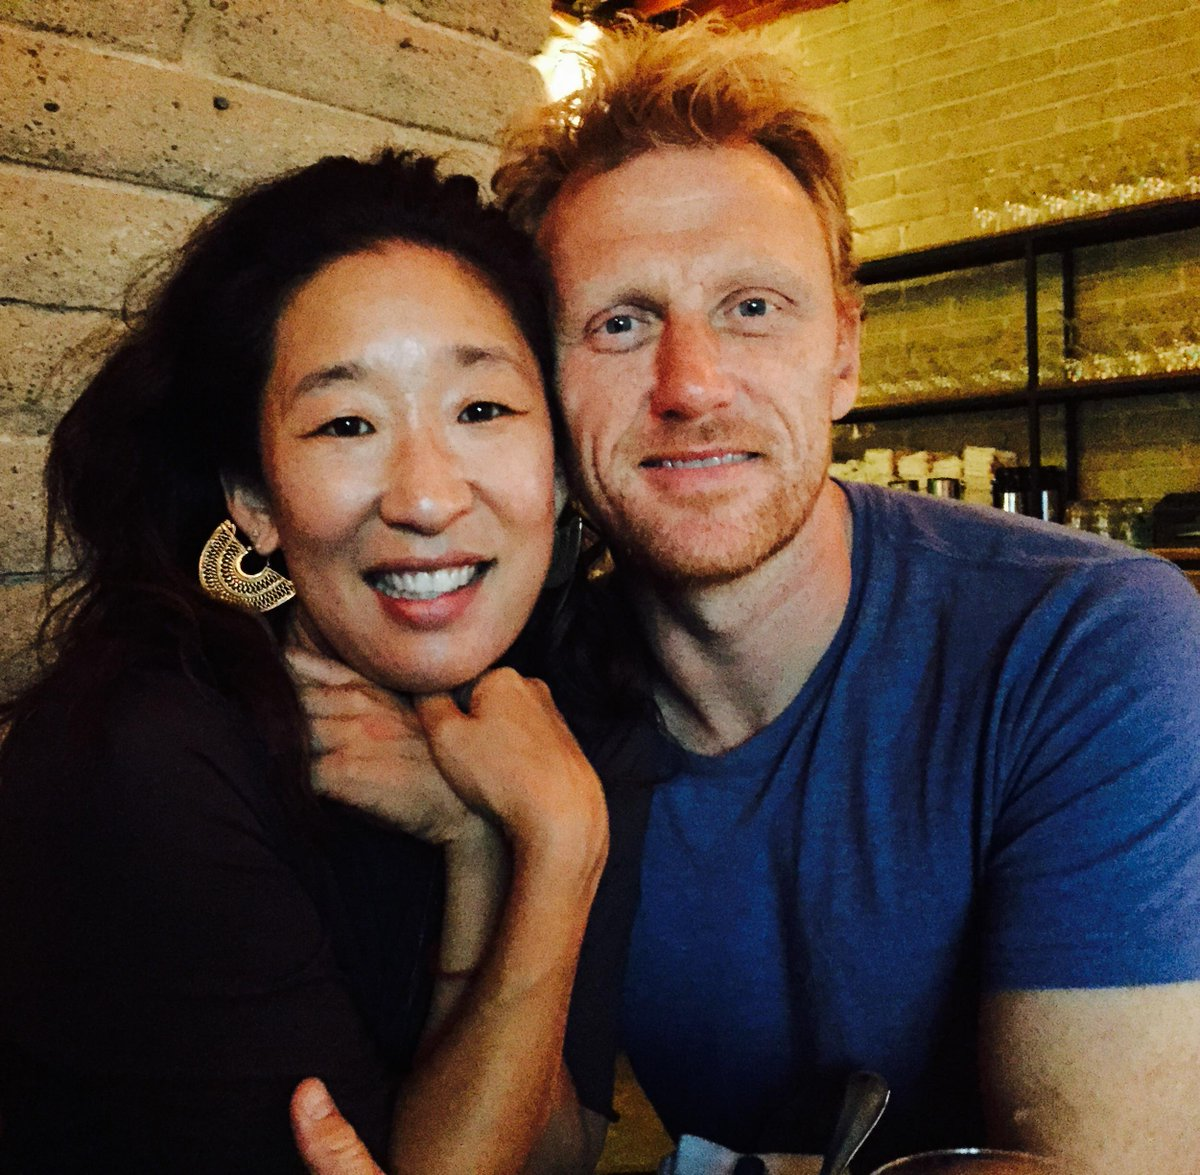 .@TheRealKMcKidd Recounts His &#39;Tearful&#39; Post-#GoldenGlobes  Reunion With Former #GreysAnatomy  Co-Star @IamSandraOh: &#39;We Hugged for a Long, Long Time&#39;  https:// tvline.com/2019/01/16/san dra-oh-kevin-mckidd-reunion-golden-globes-greys-anatomy/ &nbsp; … <br>http://pic.twitter.com/HsliWPzh5o